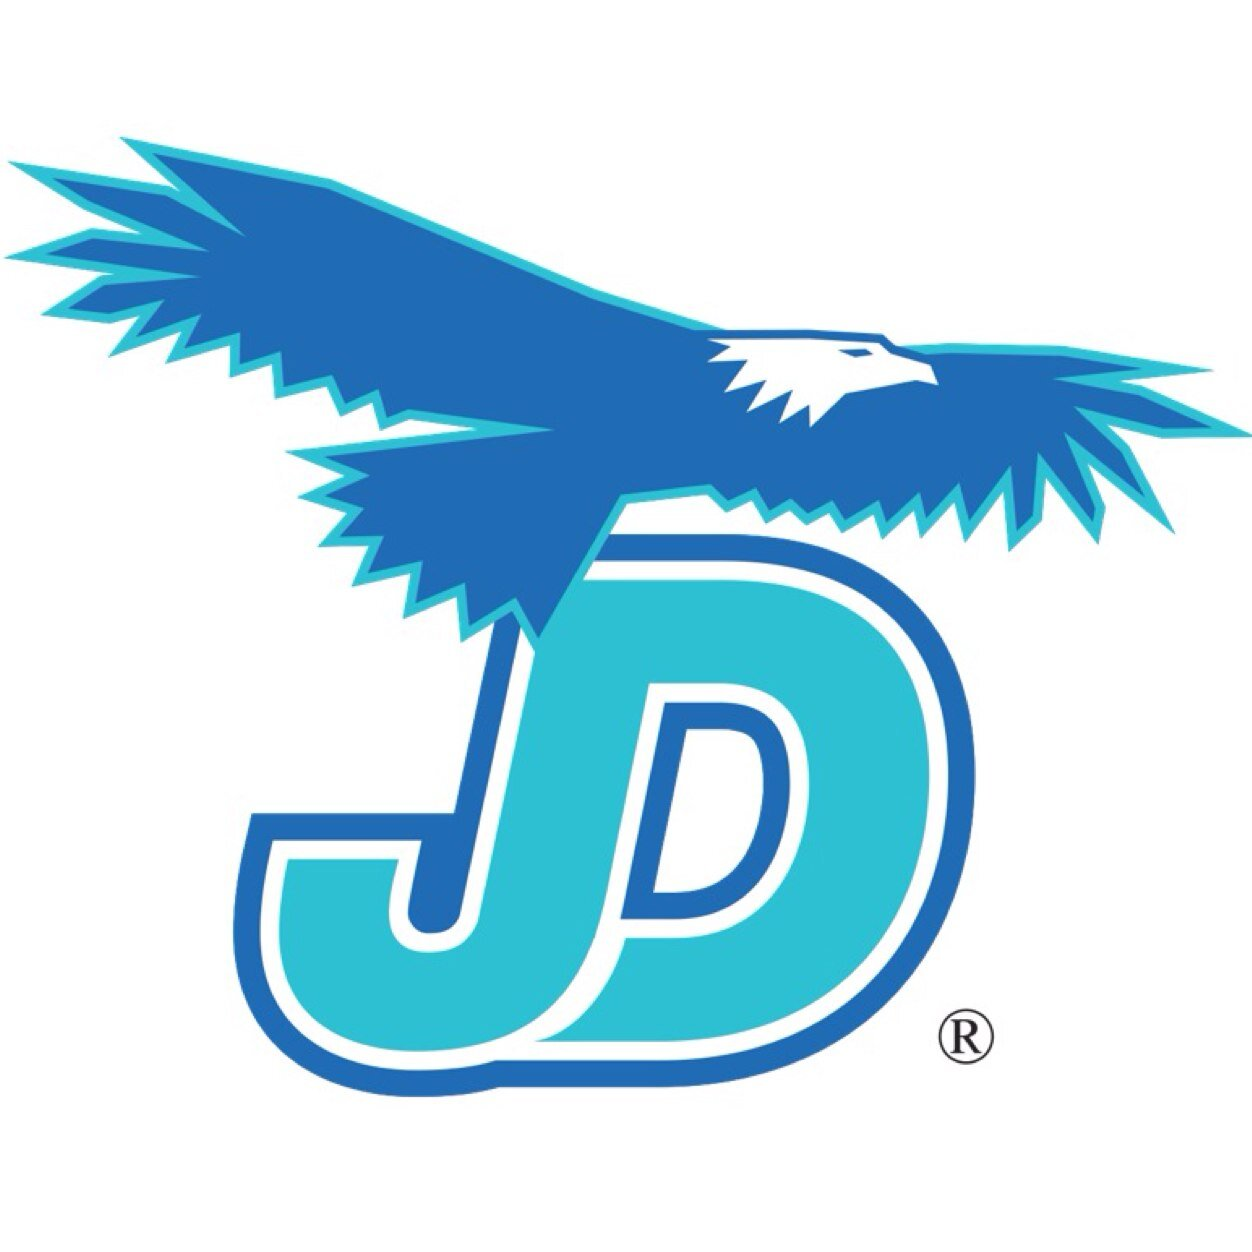 Juan Diego high school logo